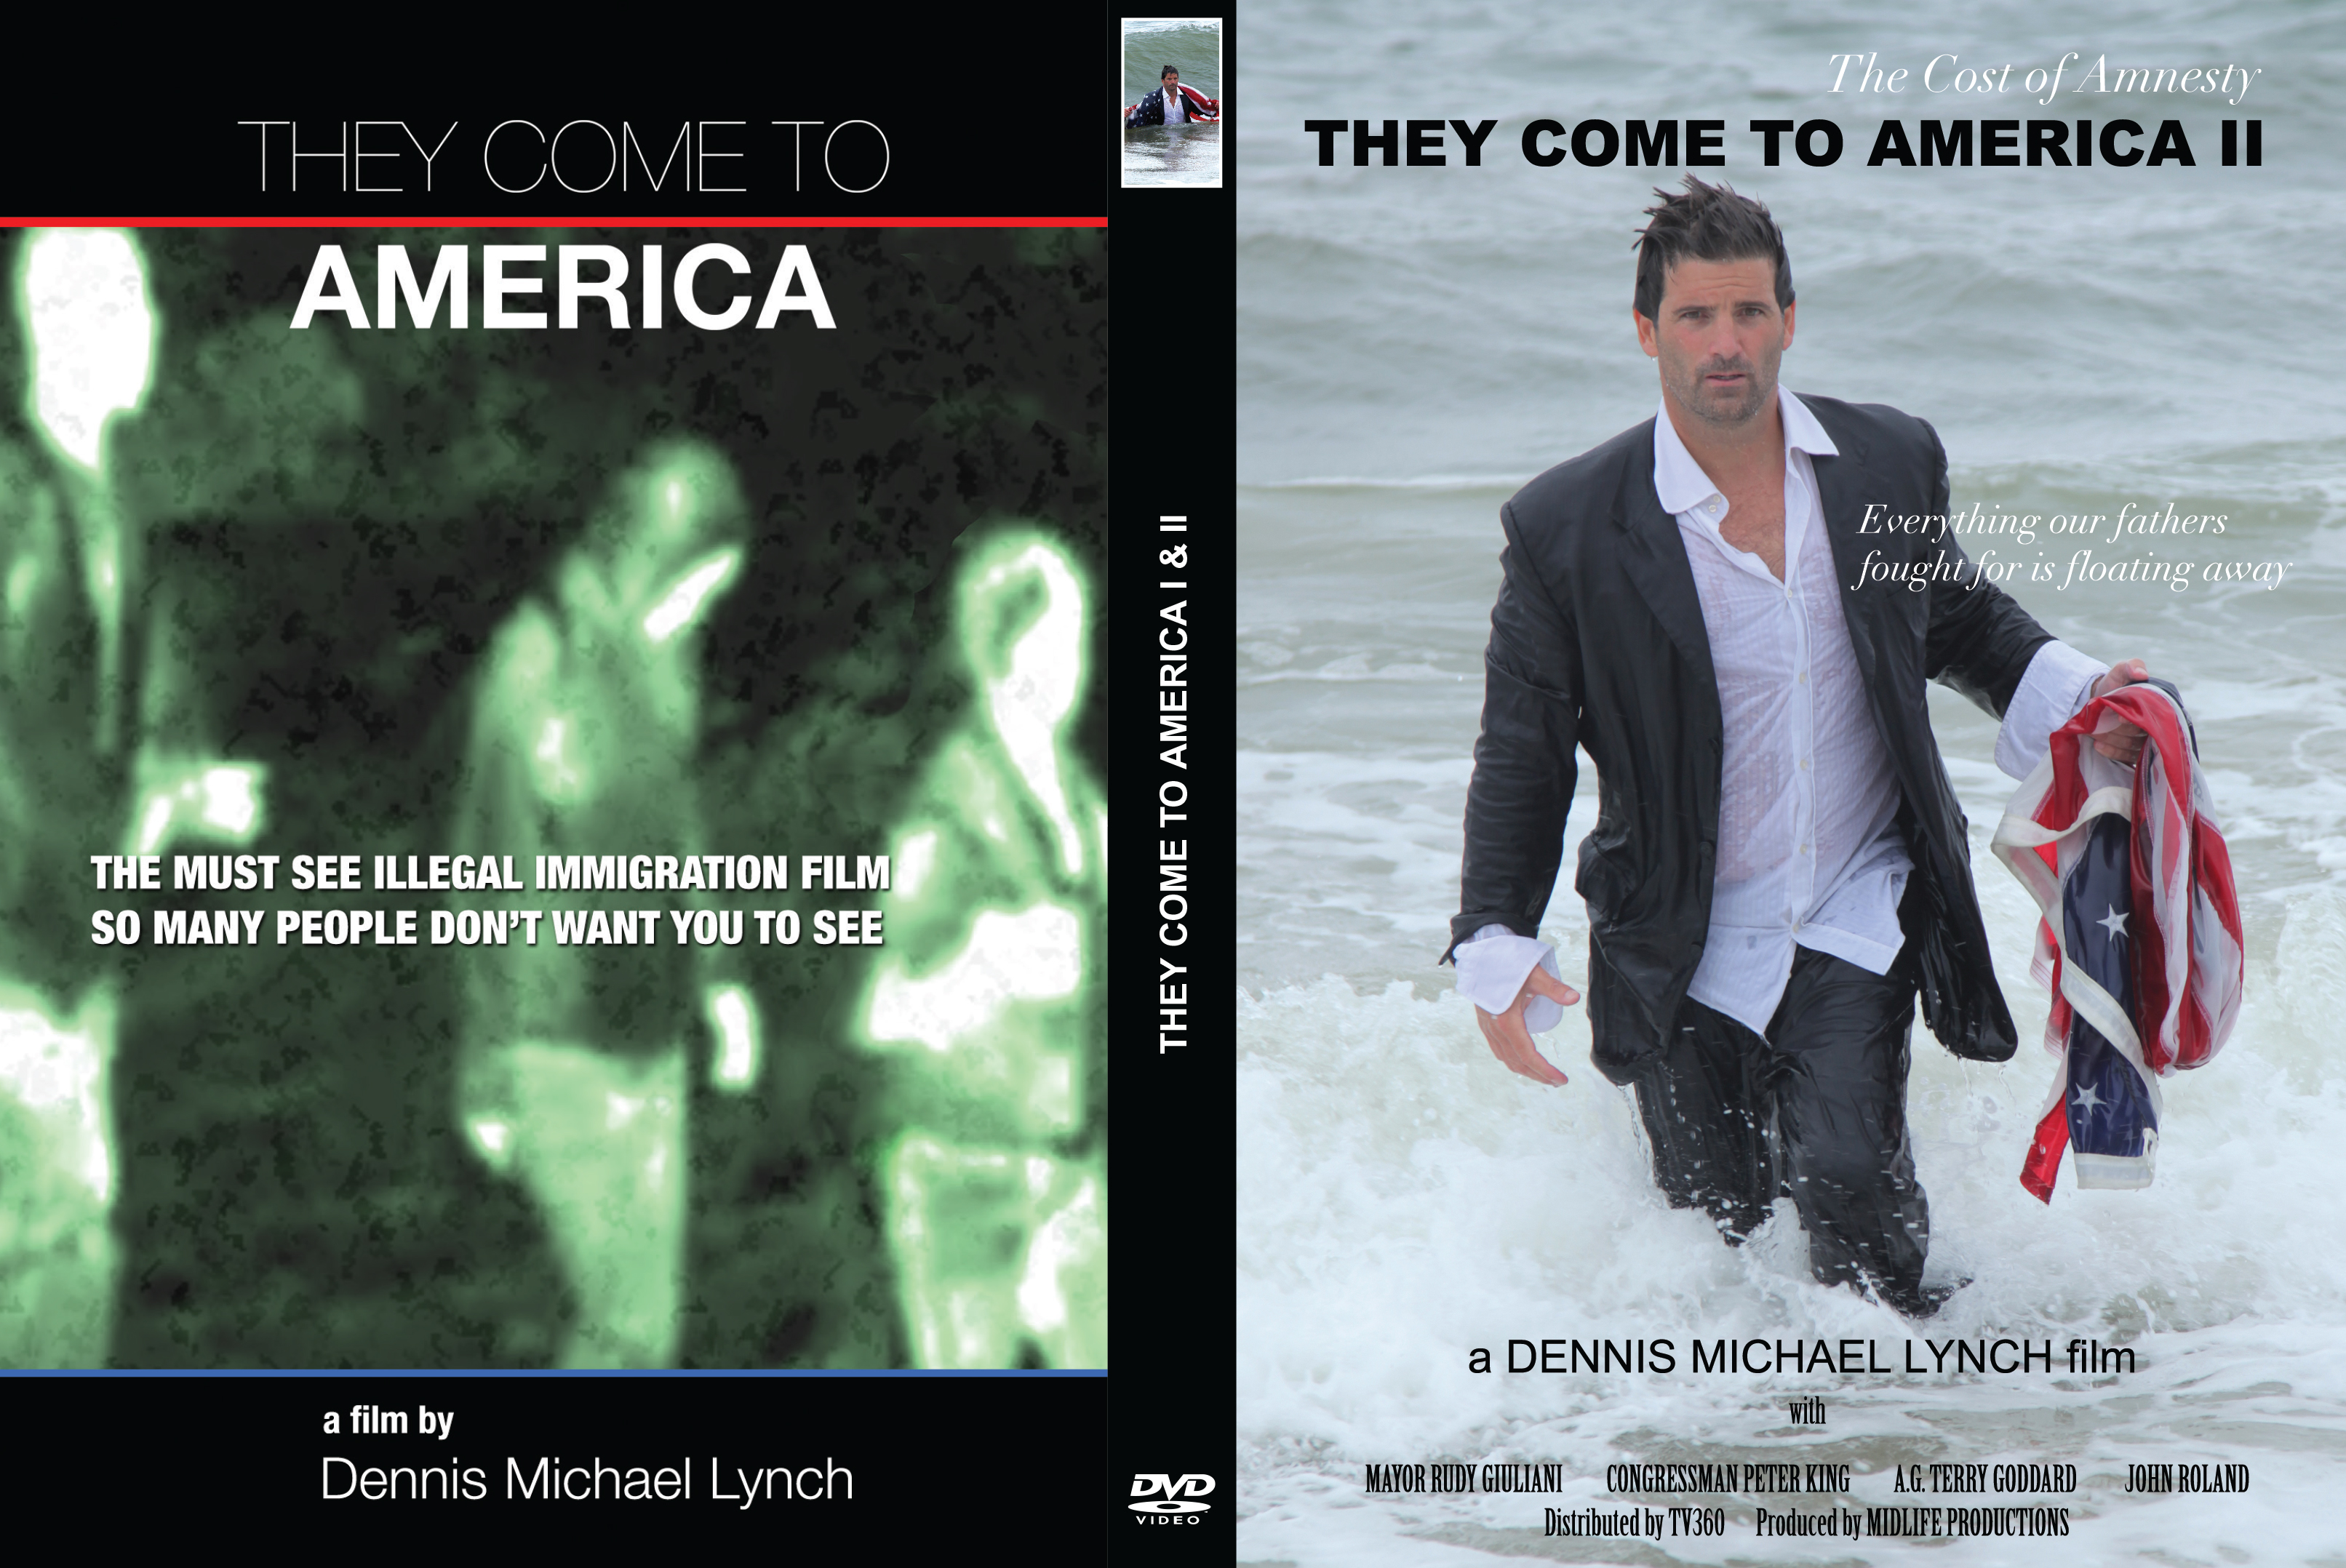 They Come to America II